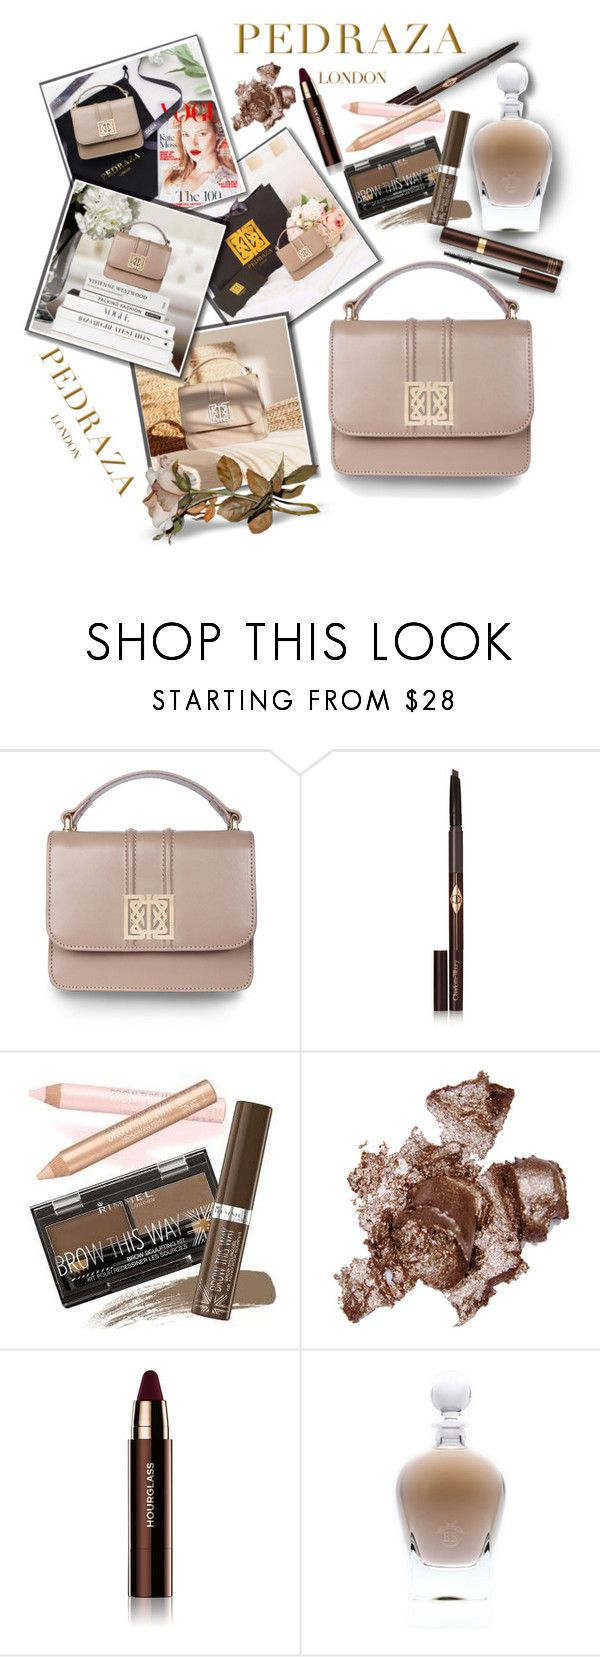 """PEDRAZA - Contest!!!"" by sarahguo ❤ liked on Polyvore featuring Charlotte Tilbury, Rimmel, By Terry, Hourglass Cosmetics, EB Florals, Tom Ford, PedrazaLondon and Pedraza"